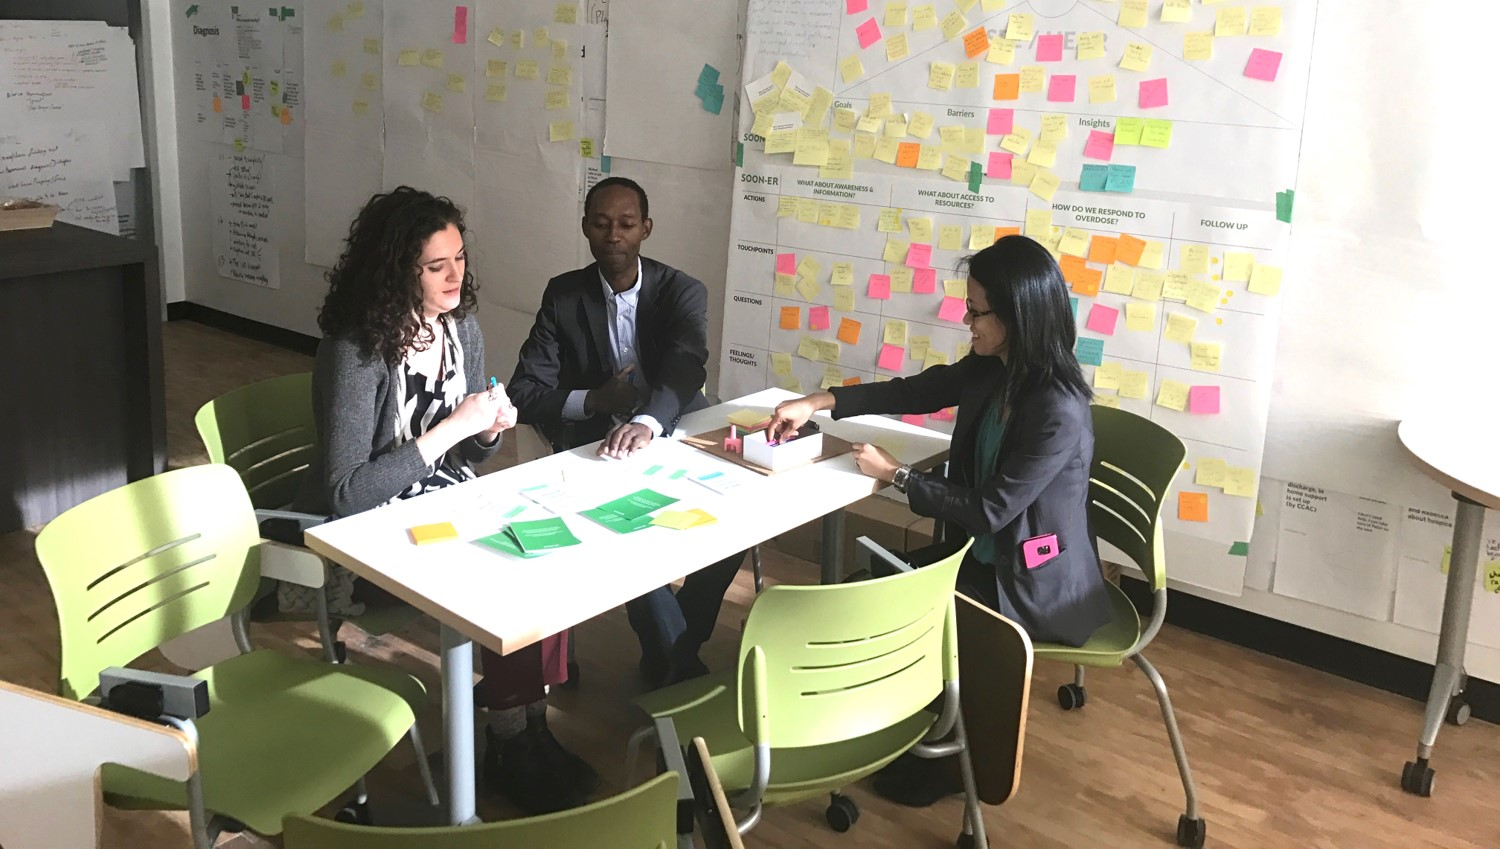 Photograph of four participants engaging in design process and conversation, seated at a table